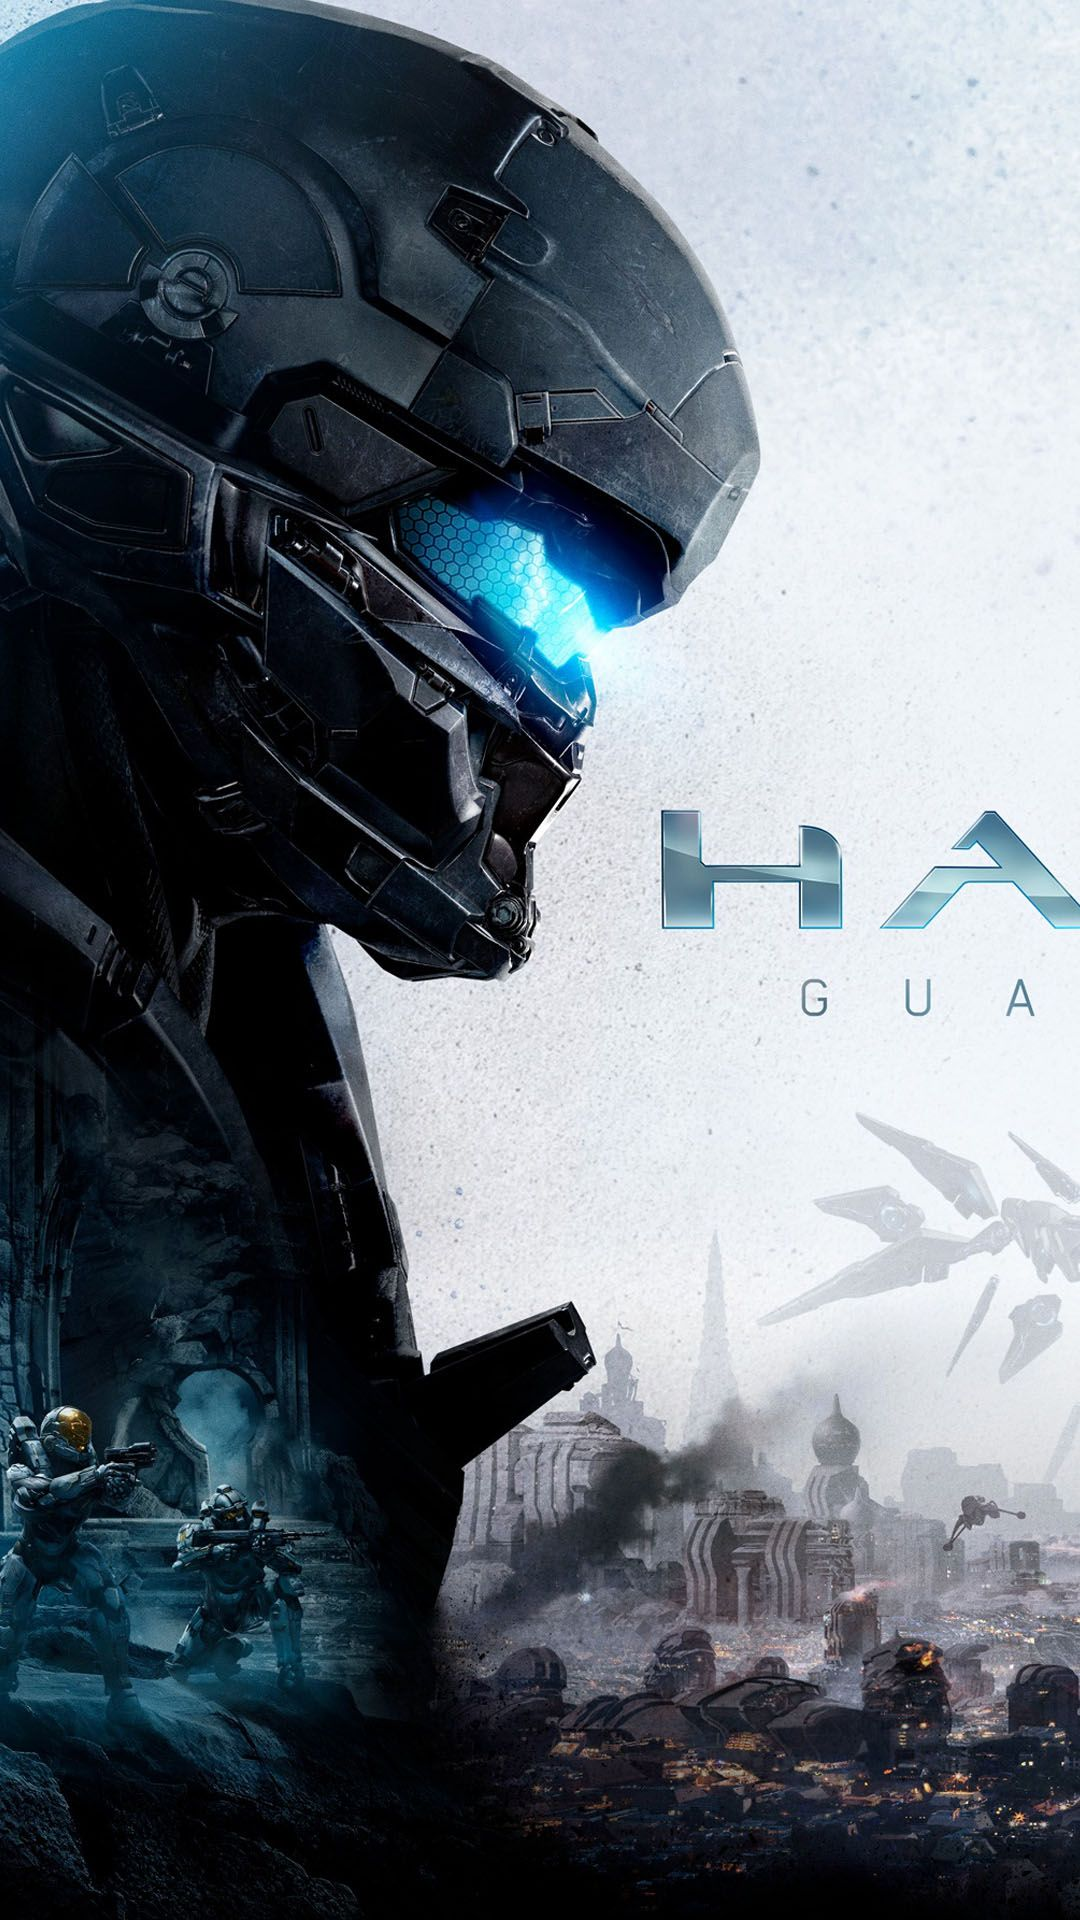 Halo Image In 2020 Hd Wallpaper Android Android Wallpaper Wallpaper